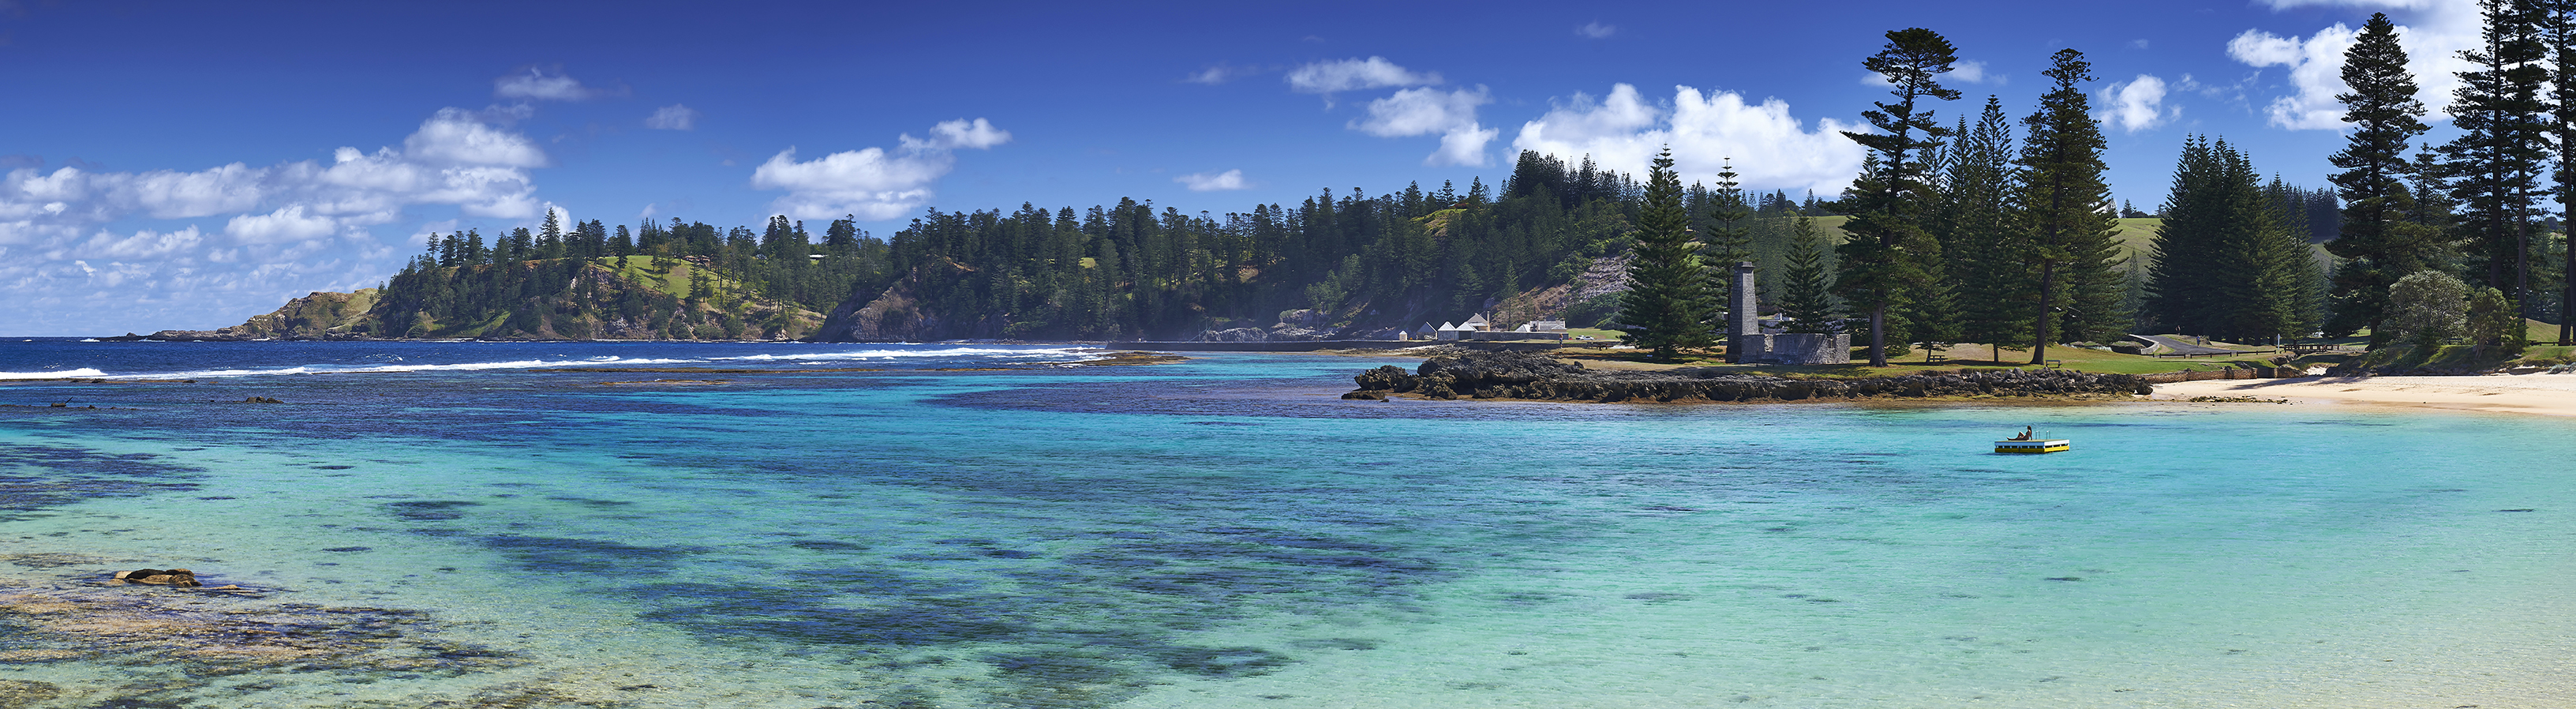 Norfolk Island beach scene